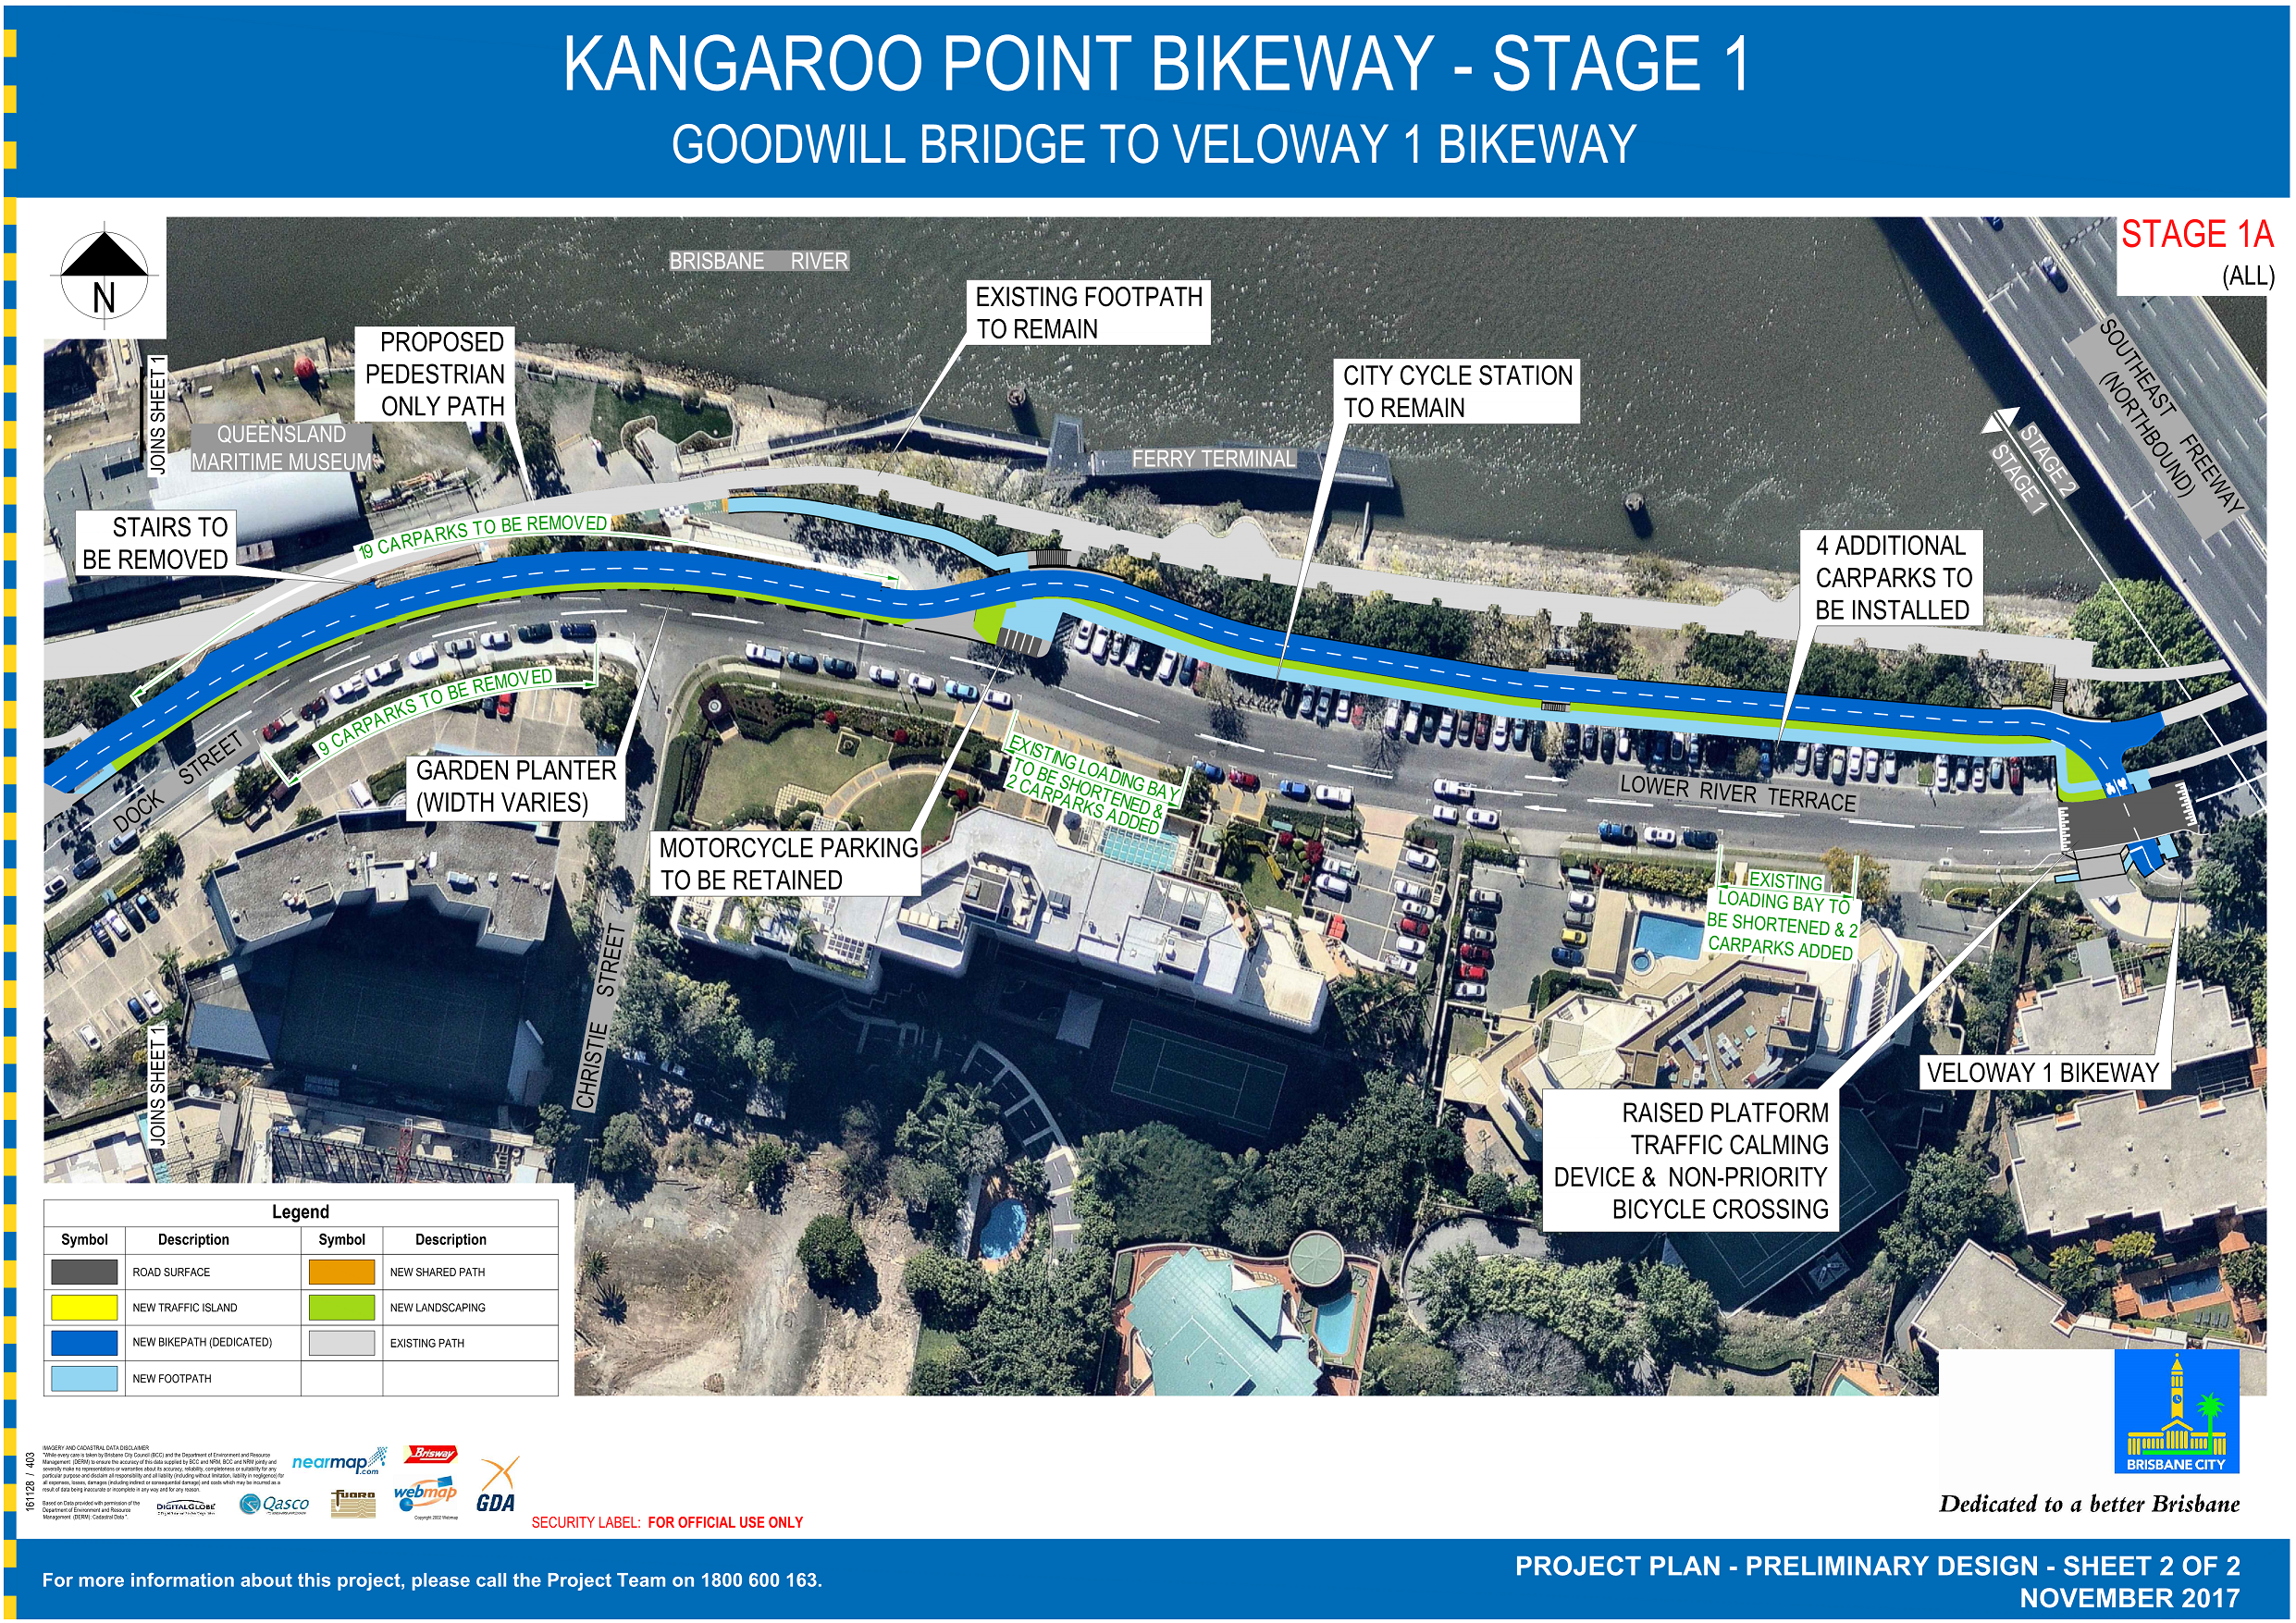 20171121_-_kangaroo_point_bikeway_stage_1_sheet_2_of_21.png